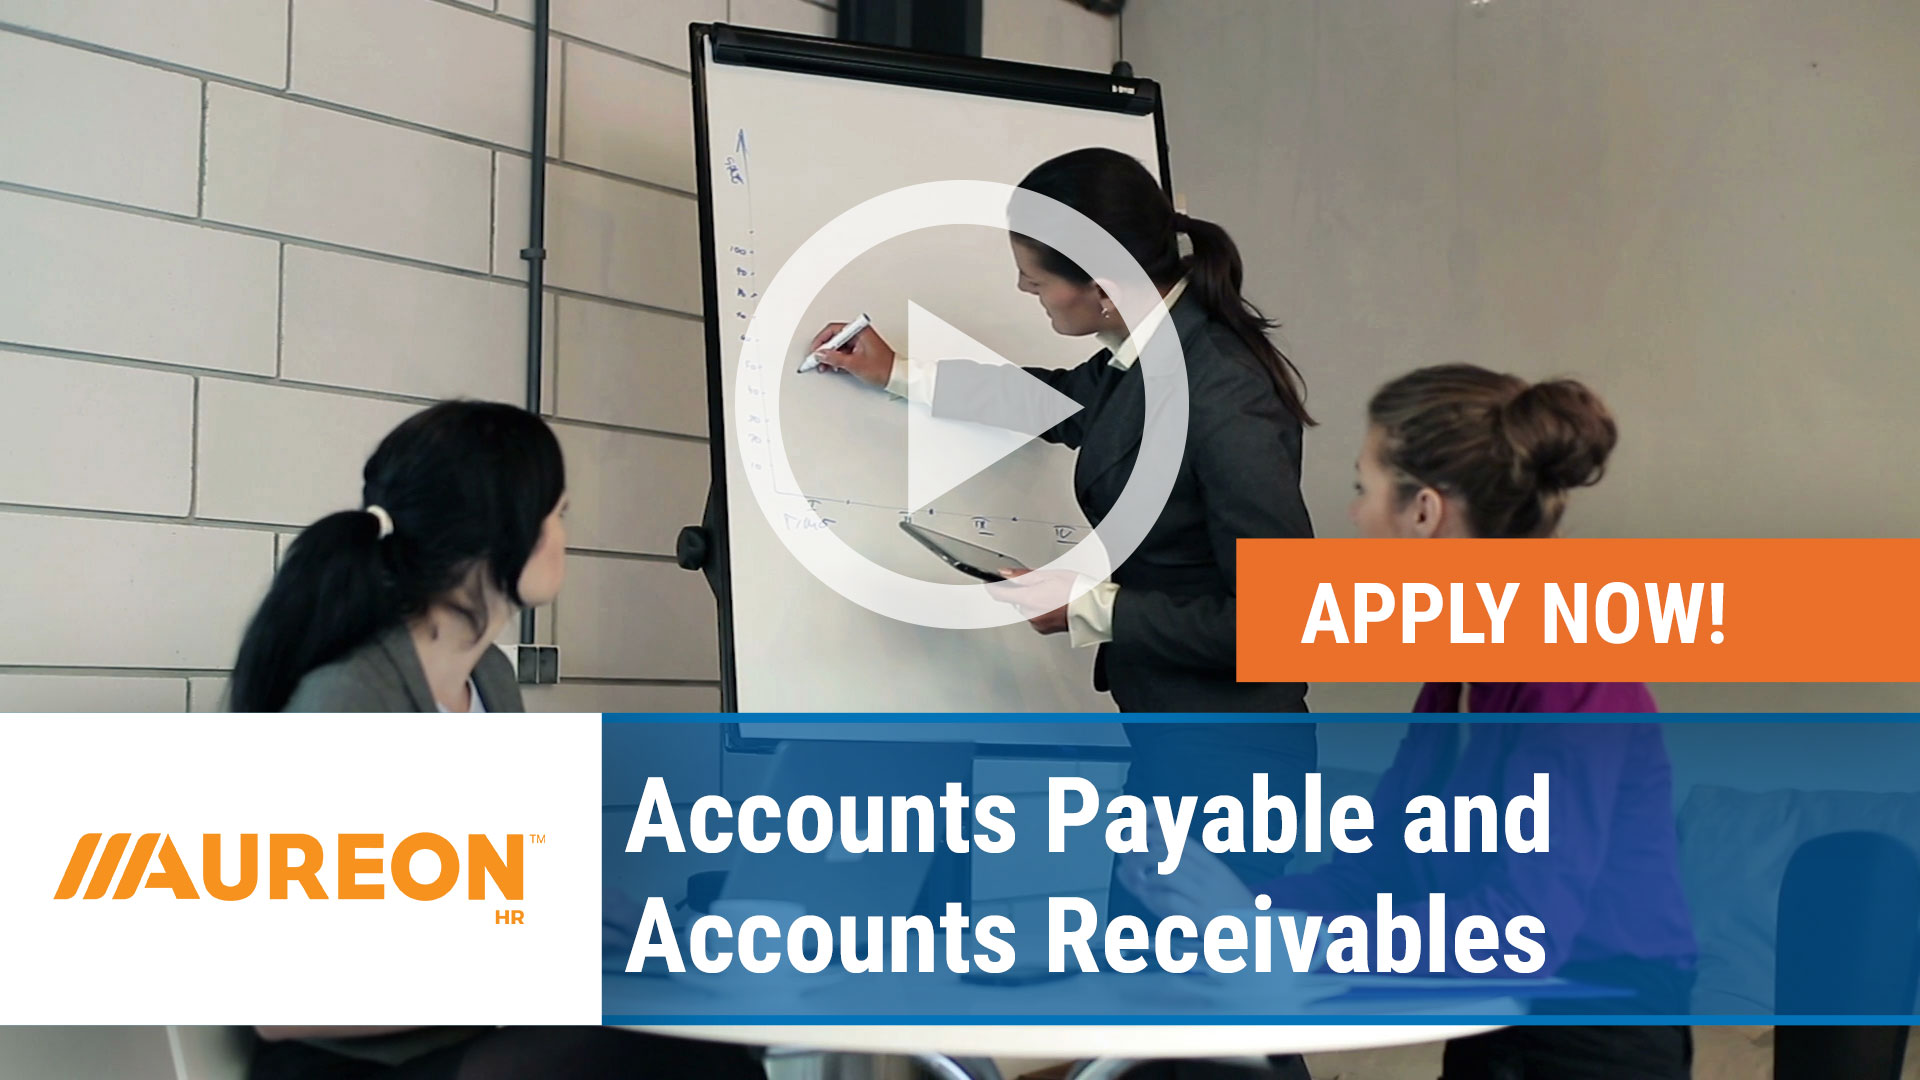 Watch our careers video for available job opening Accounts Payable and Accounts Receivables in Ames,  IA